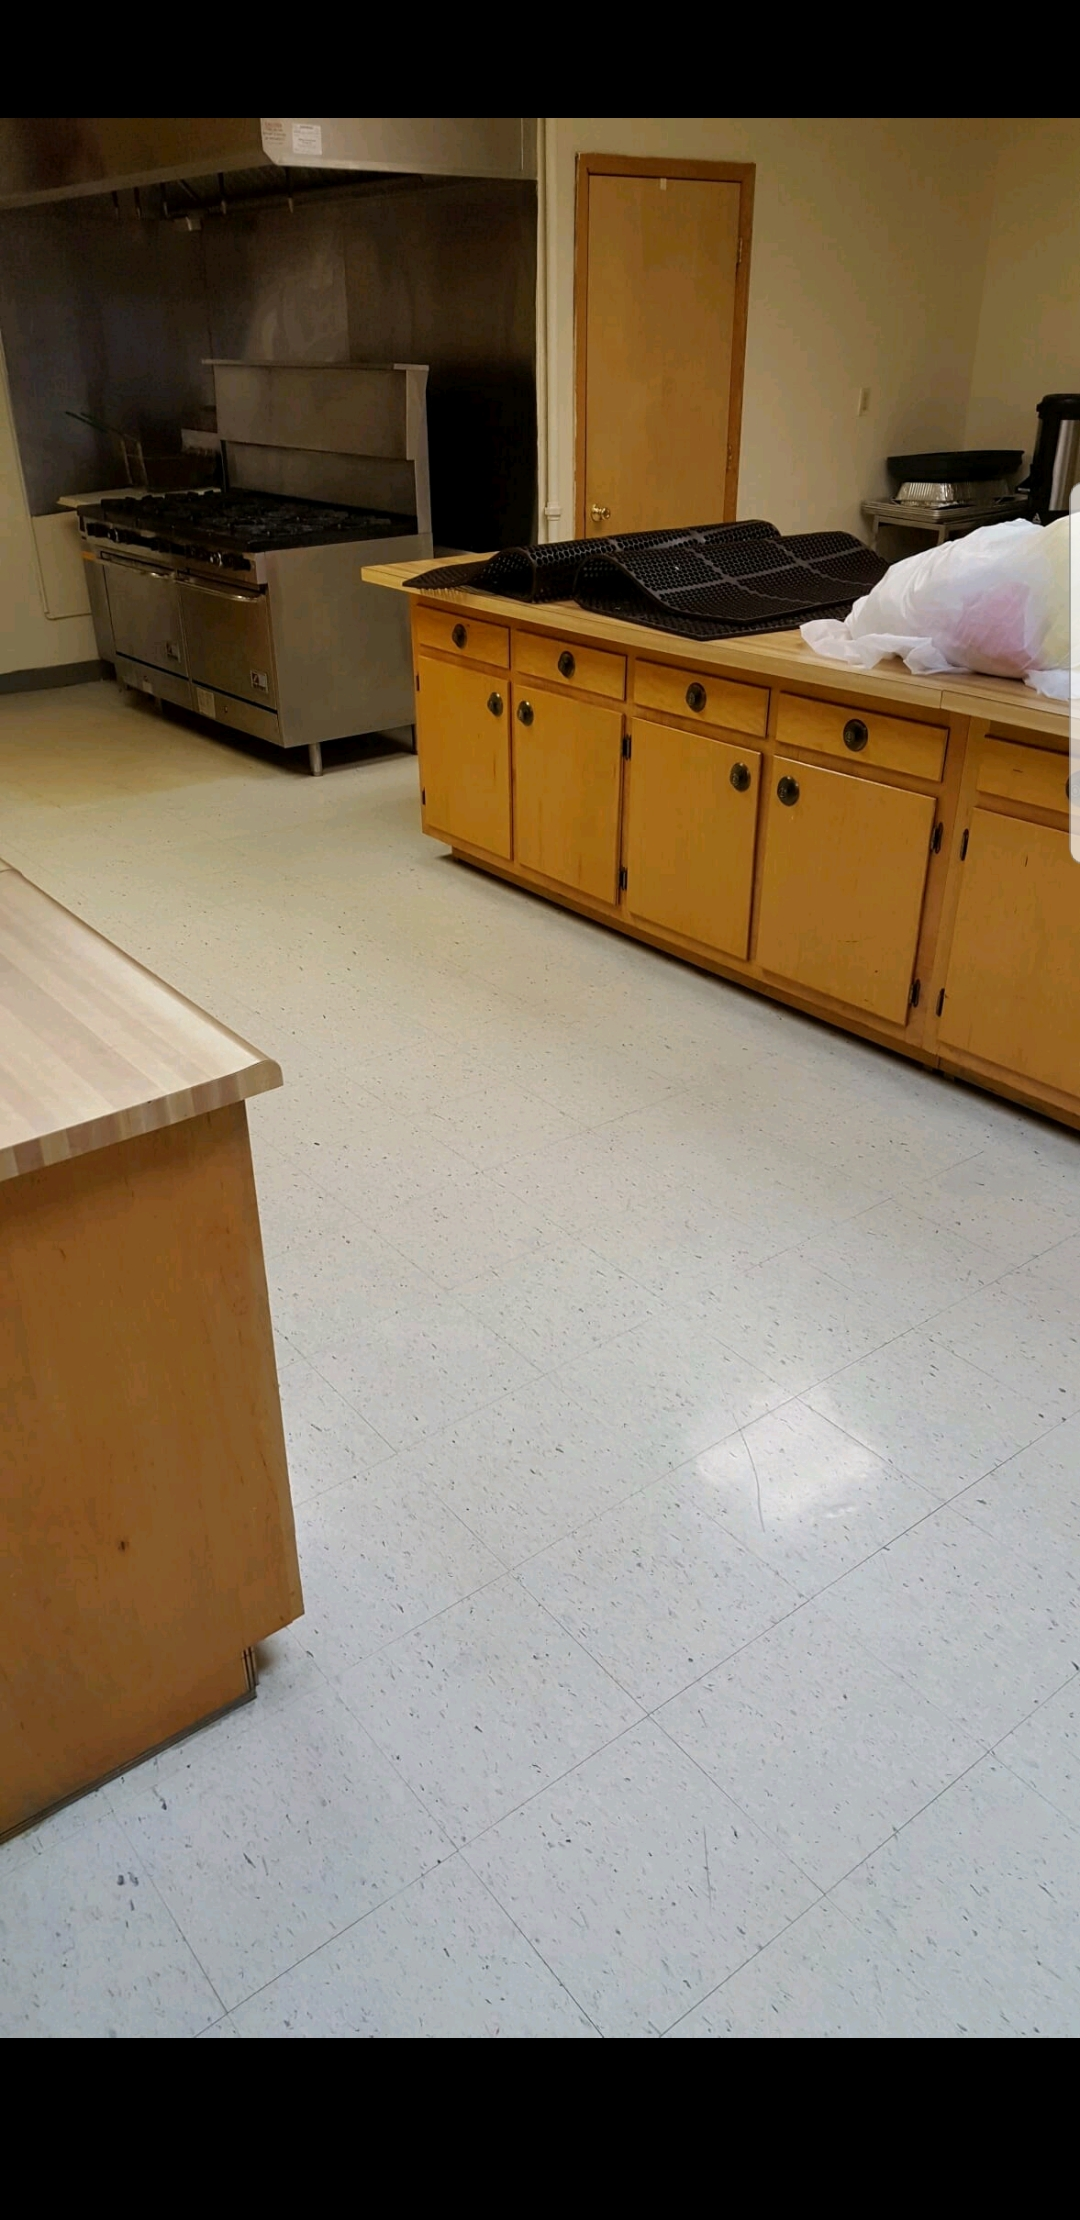 Iec Cleaning Services, LLC image 5